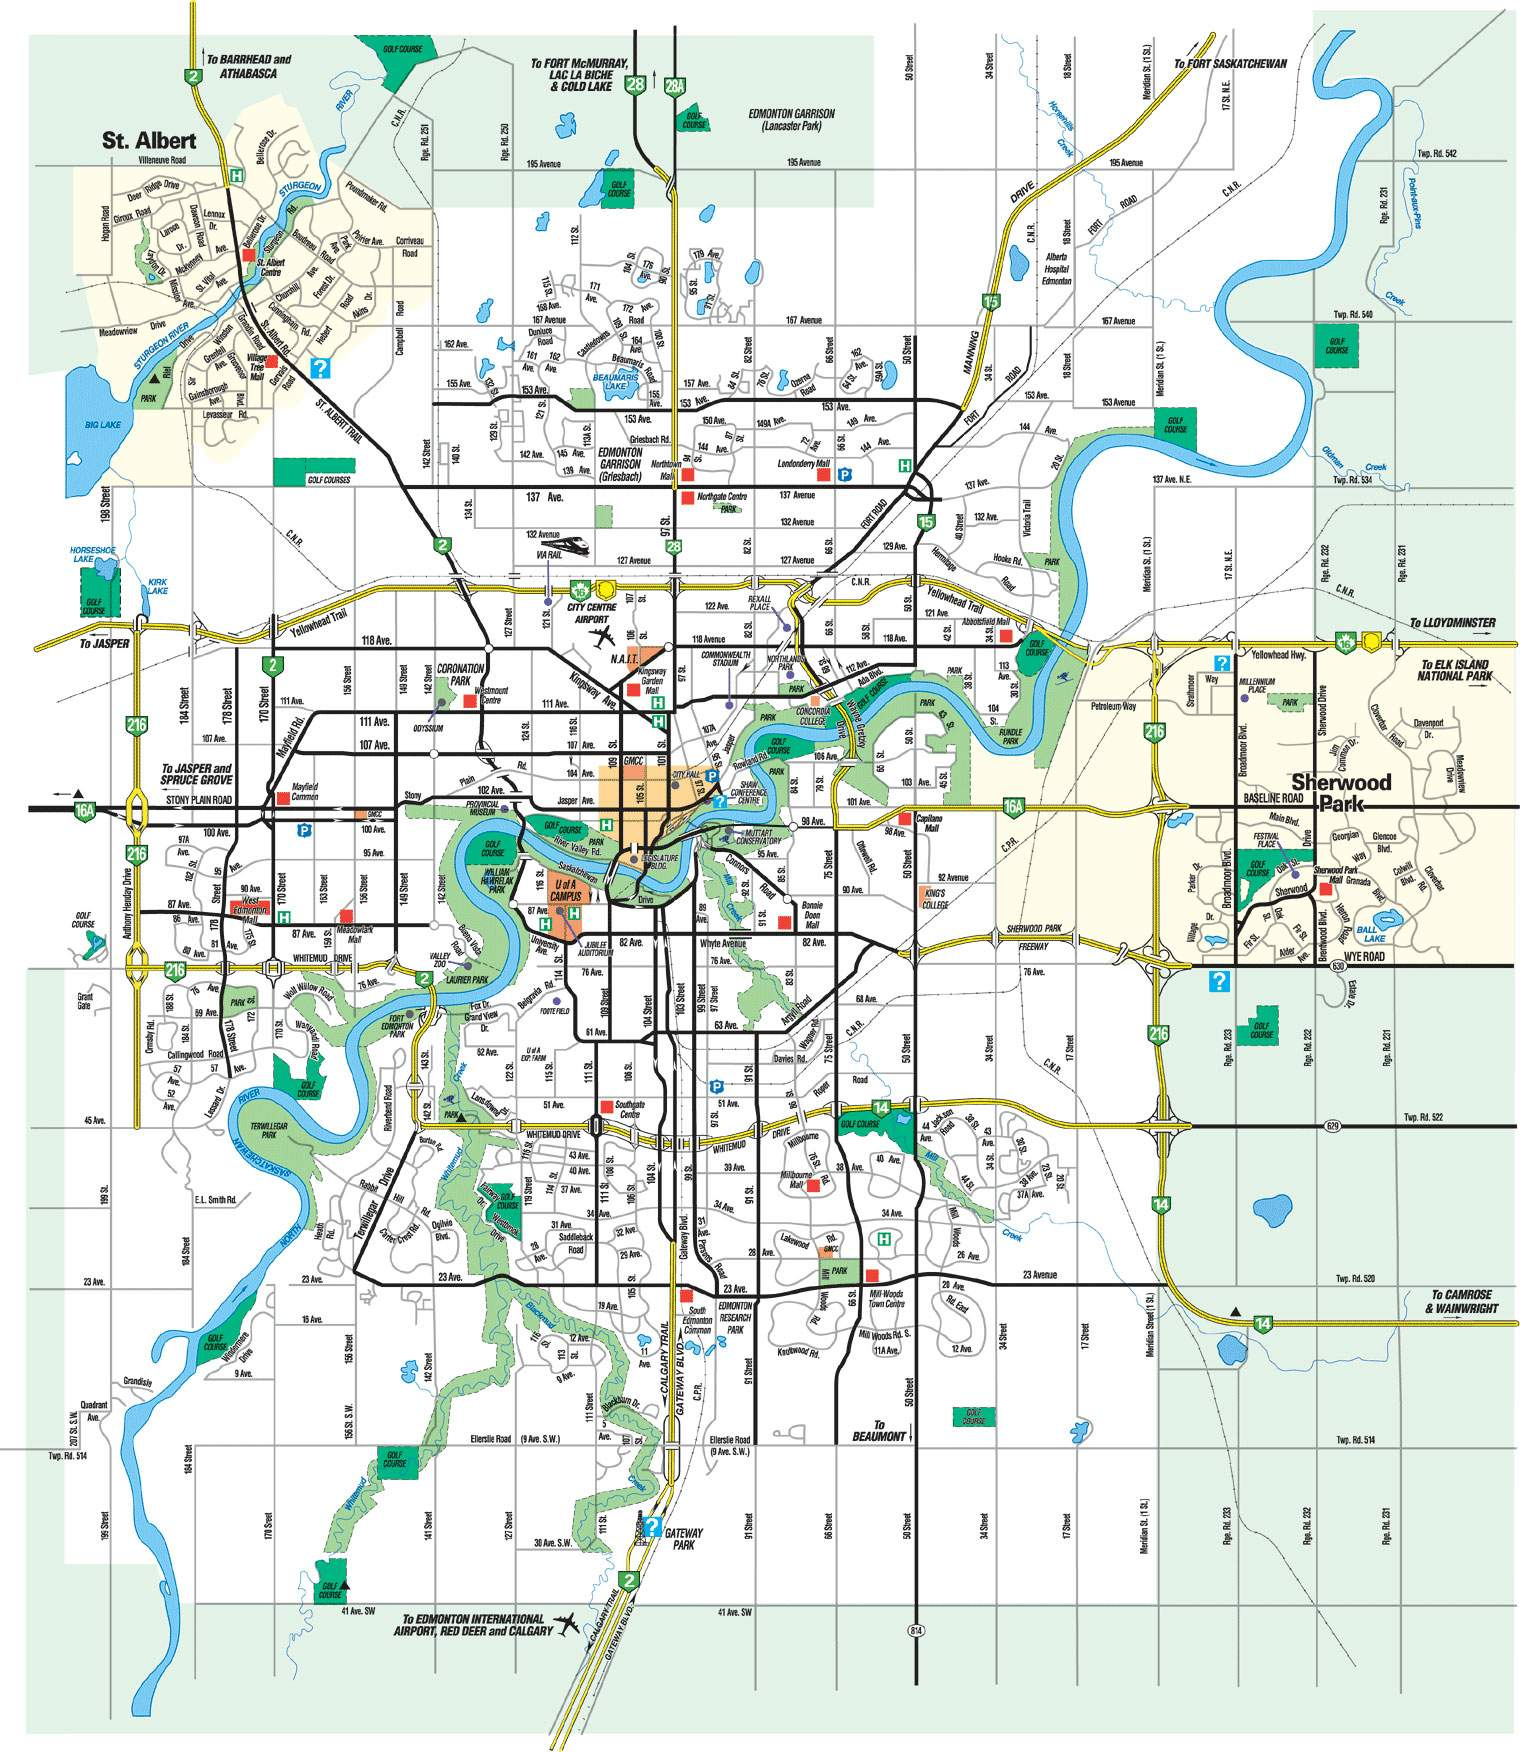 Map Of Edmonton Canada Large Edmonton Maps for Free Download and Print | High Resolution